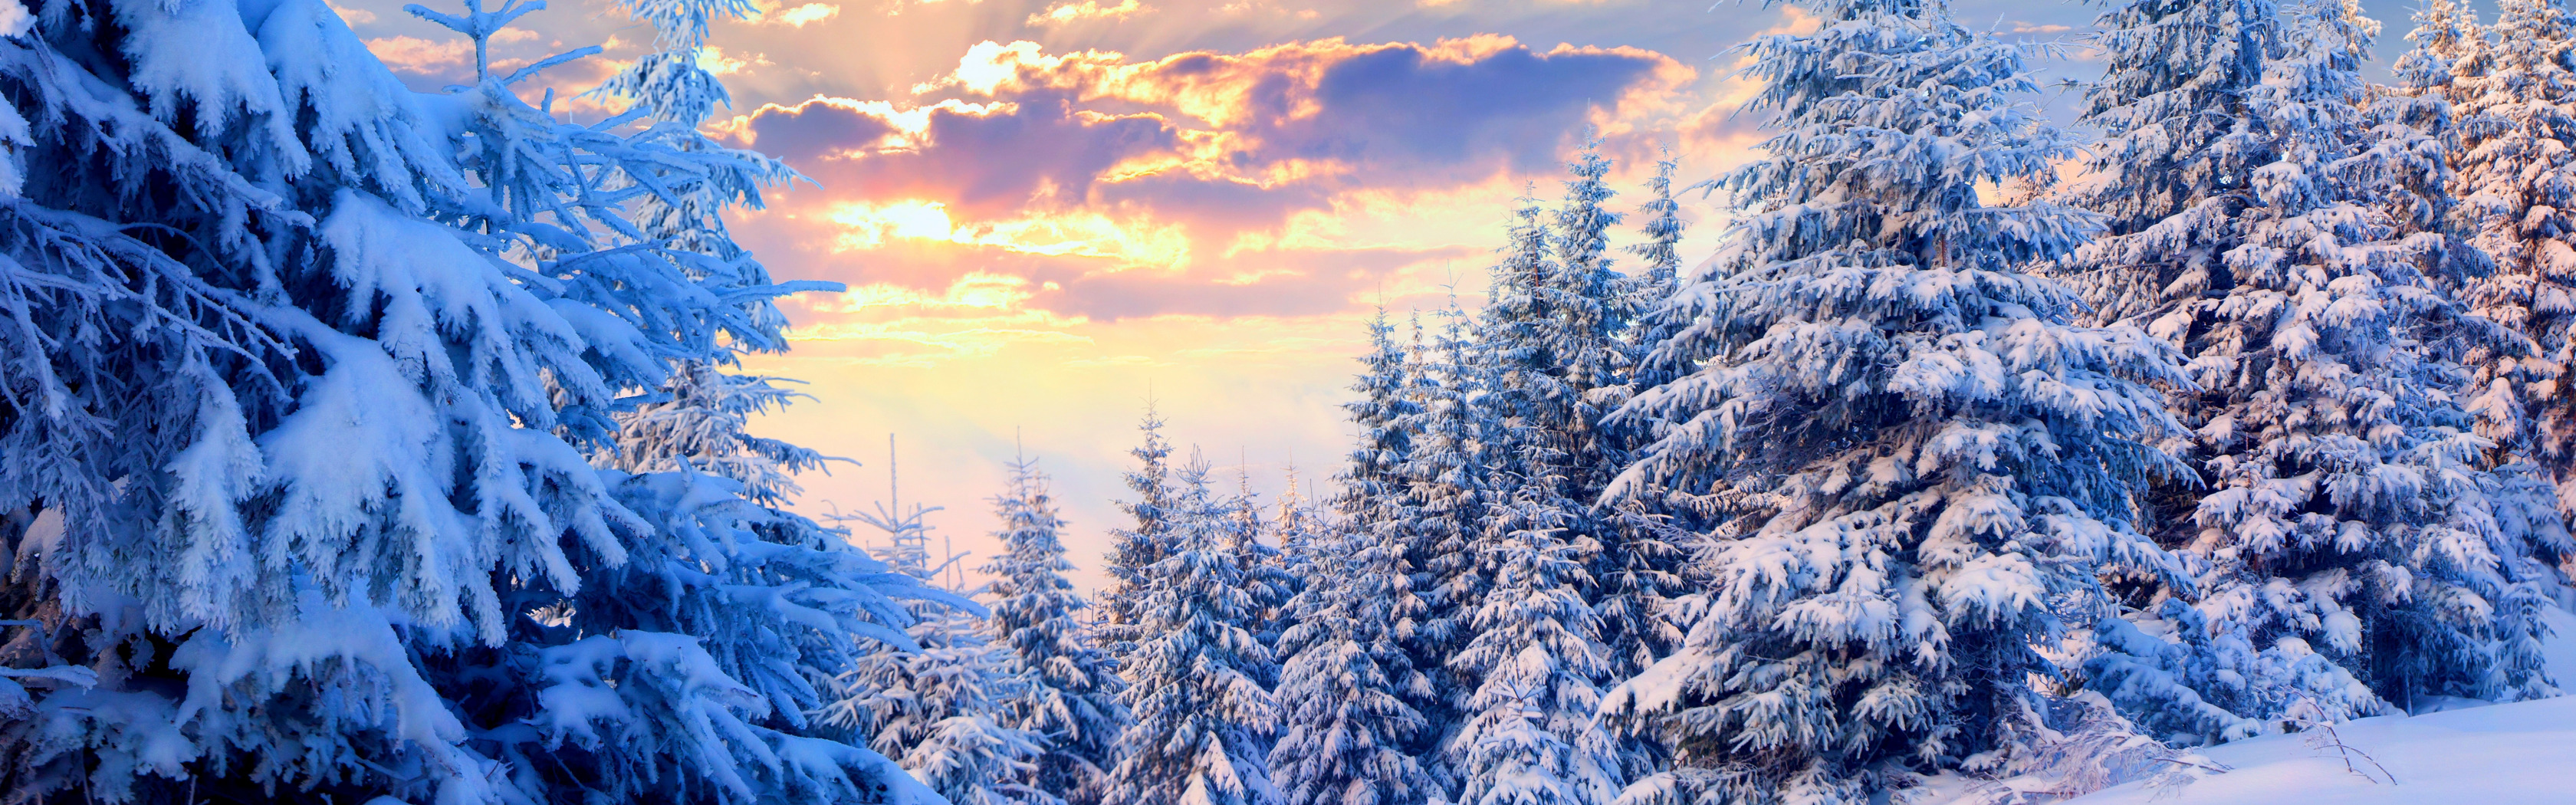 winter landscape desktop background